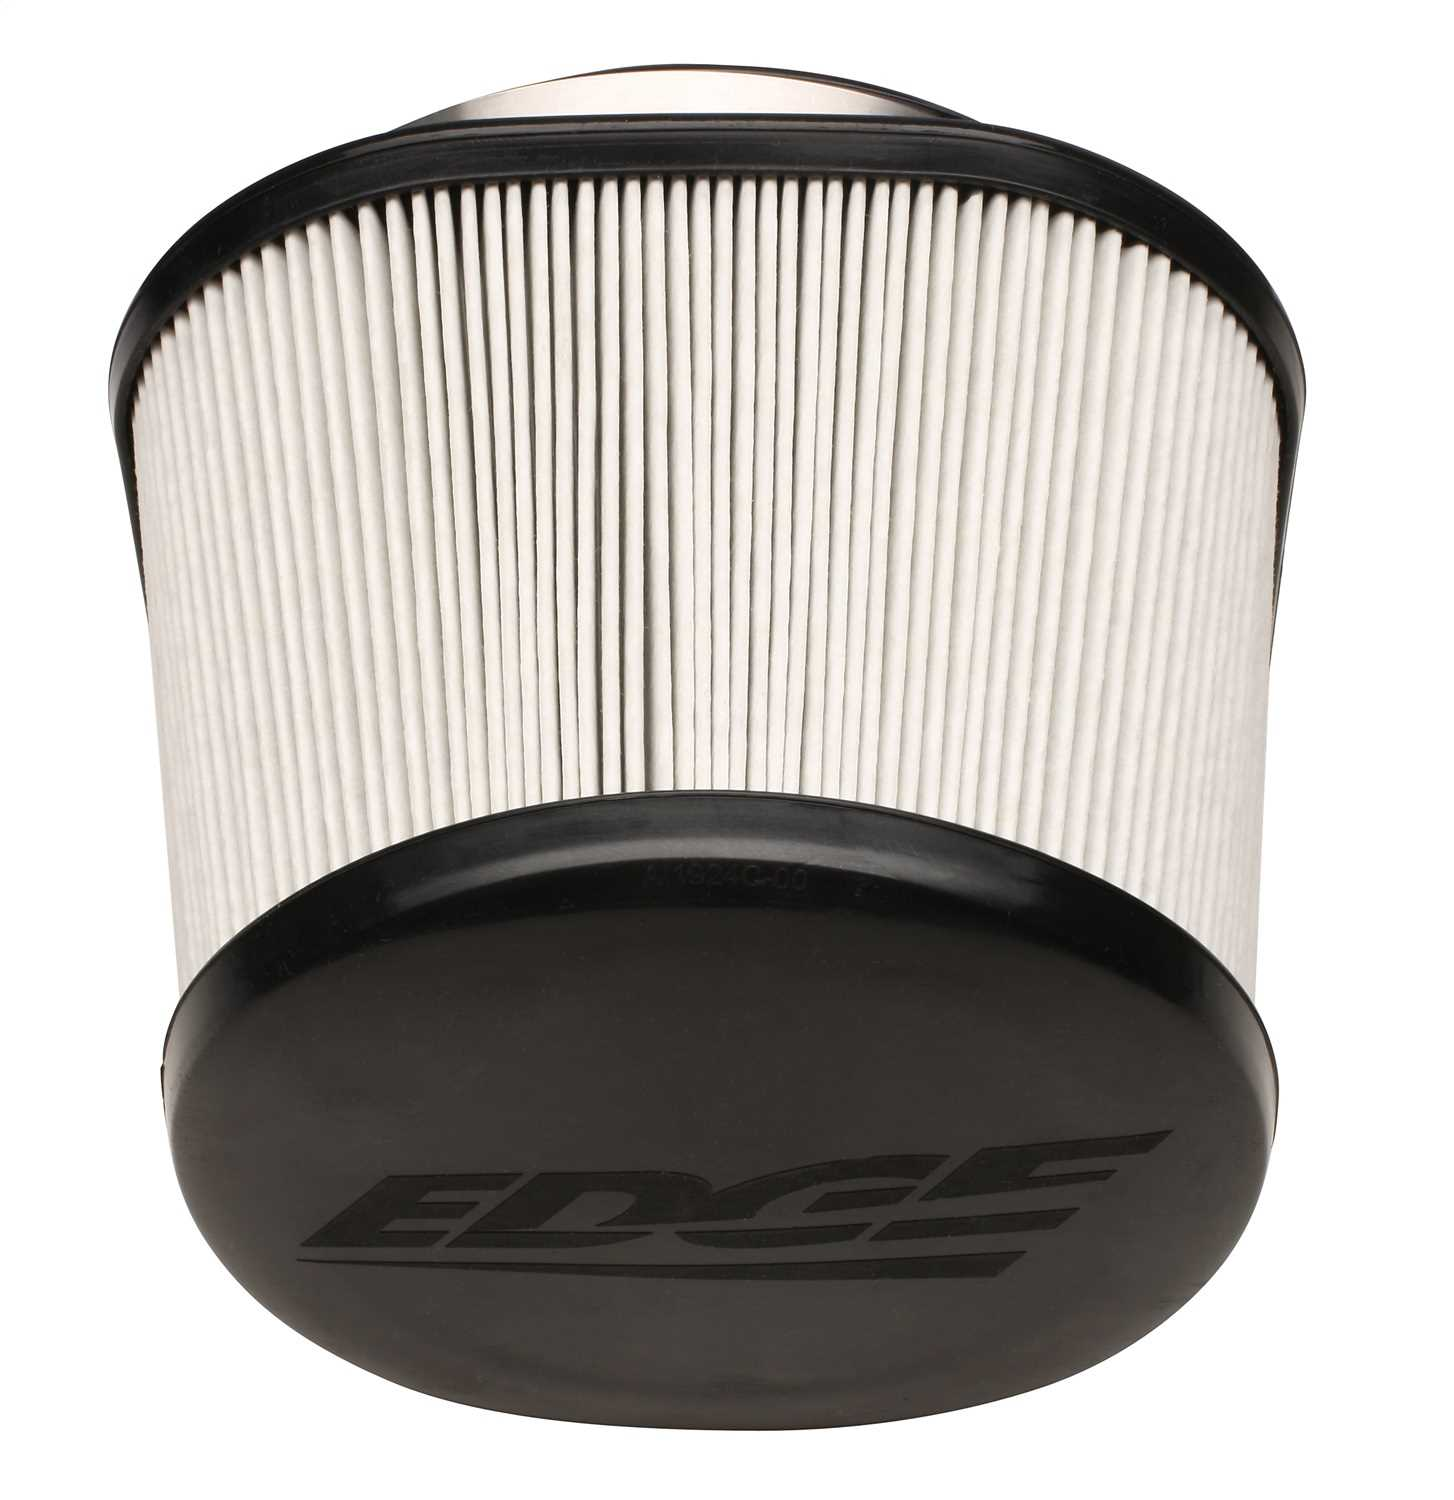 Edge Products Jammer Filter Wrap Covers 88003-D